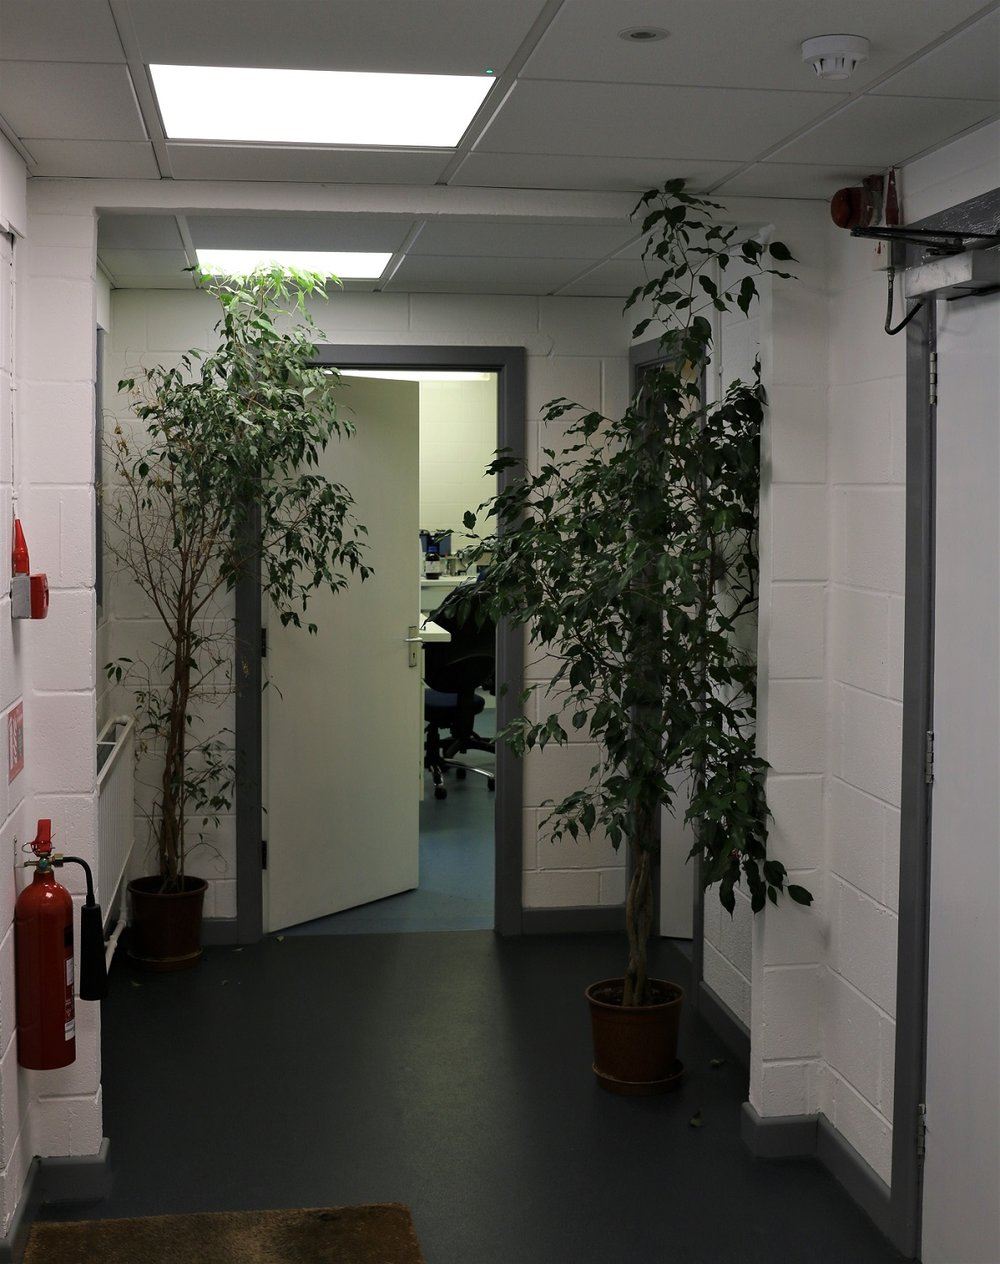 Redecoration and brightening of hallways